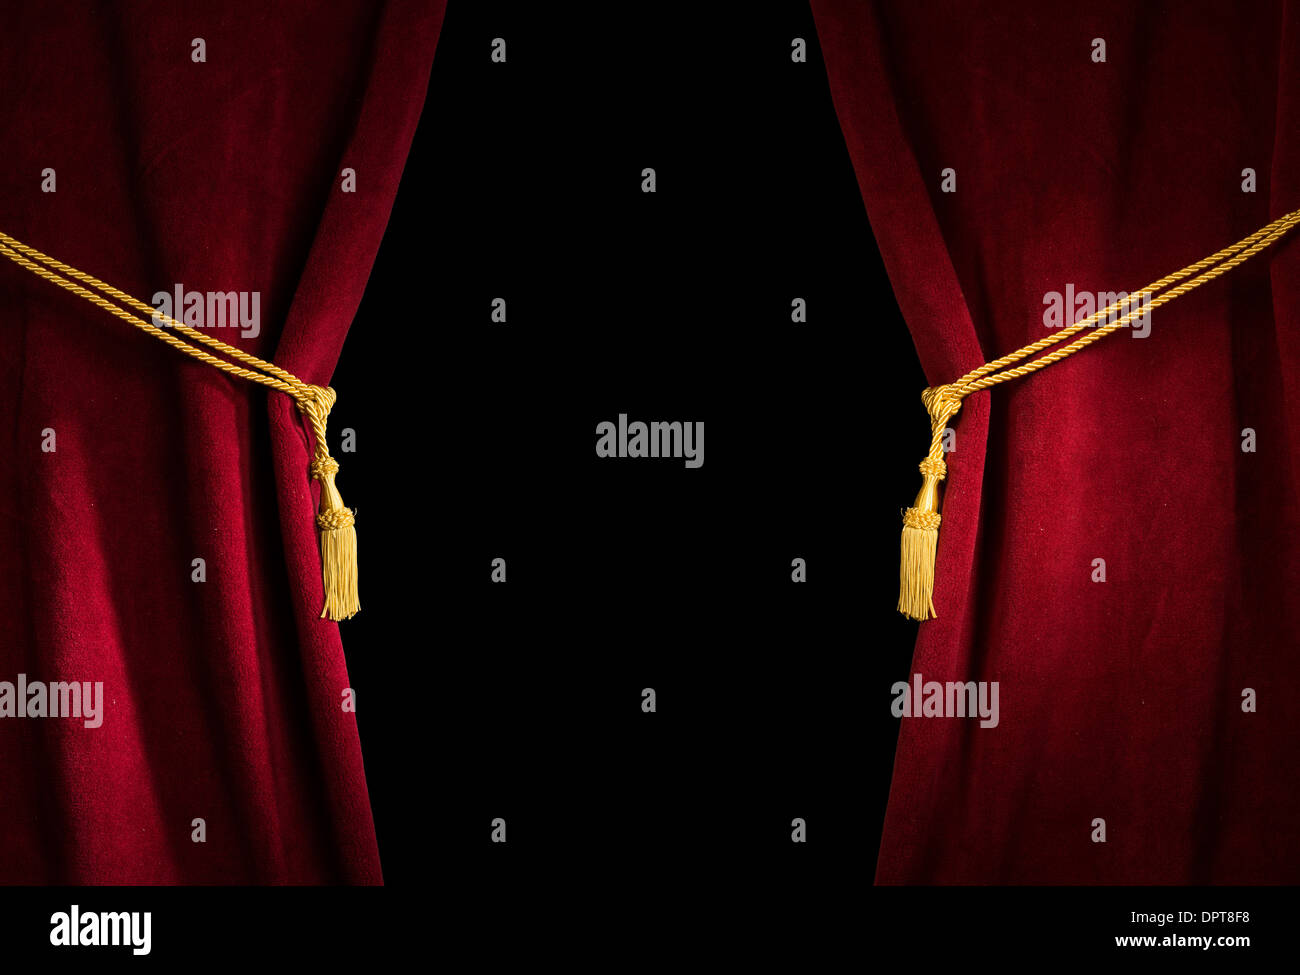 Red velvet curtain with tassel. Close up black isolated curtain - Stock Image